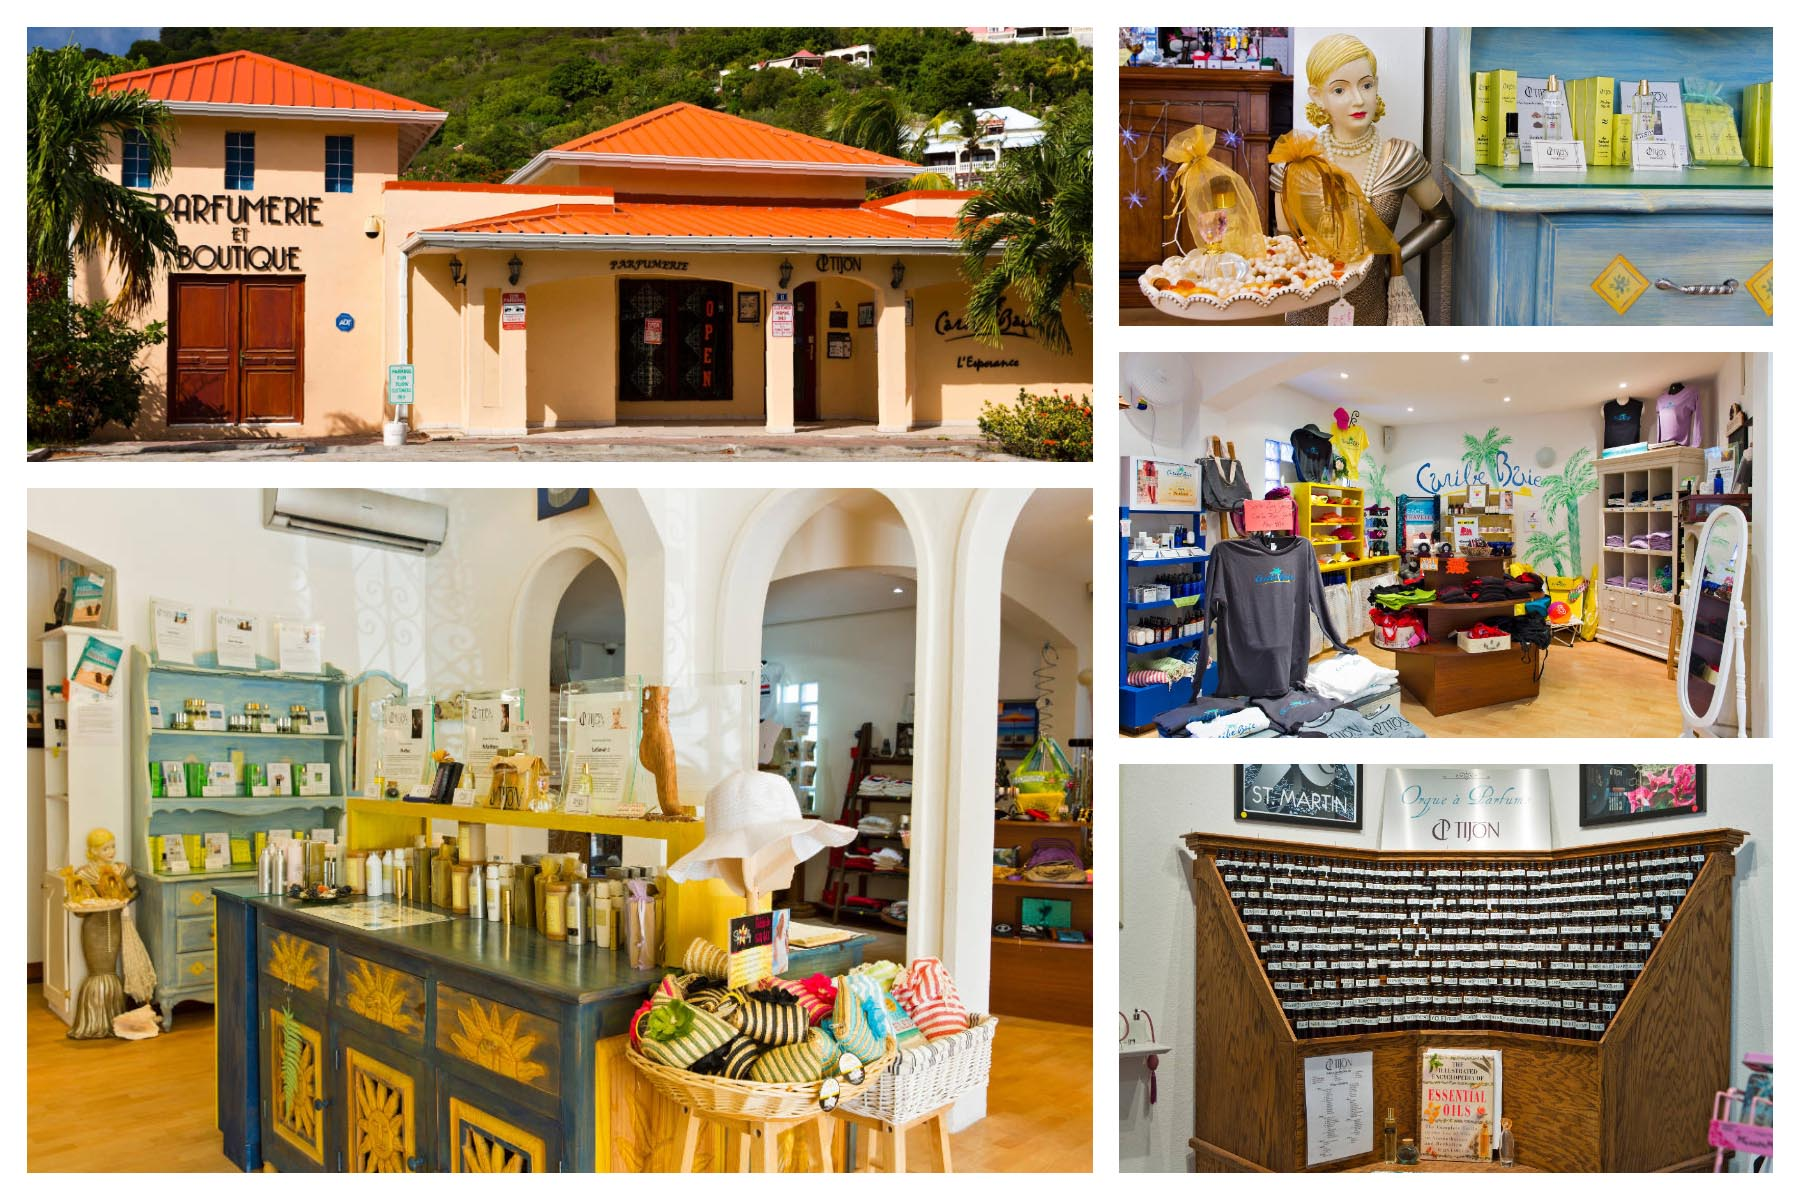 Tijon Perfumes - St. Martin / St. Maarten - Grand Case - Make your own perfume, boutique store, souvernirs, perfumes, jewelry.